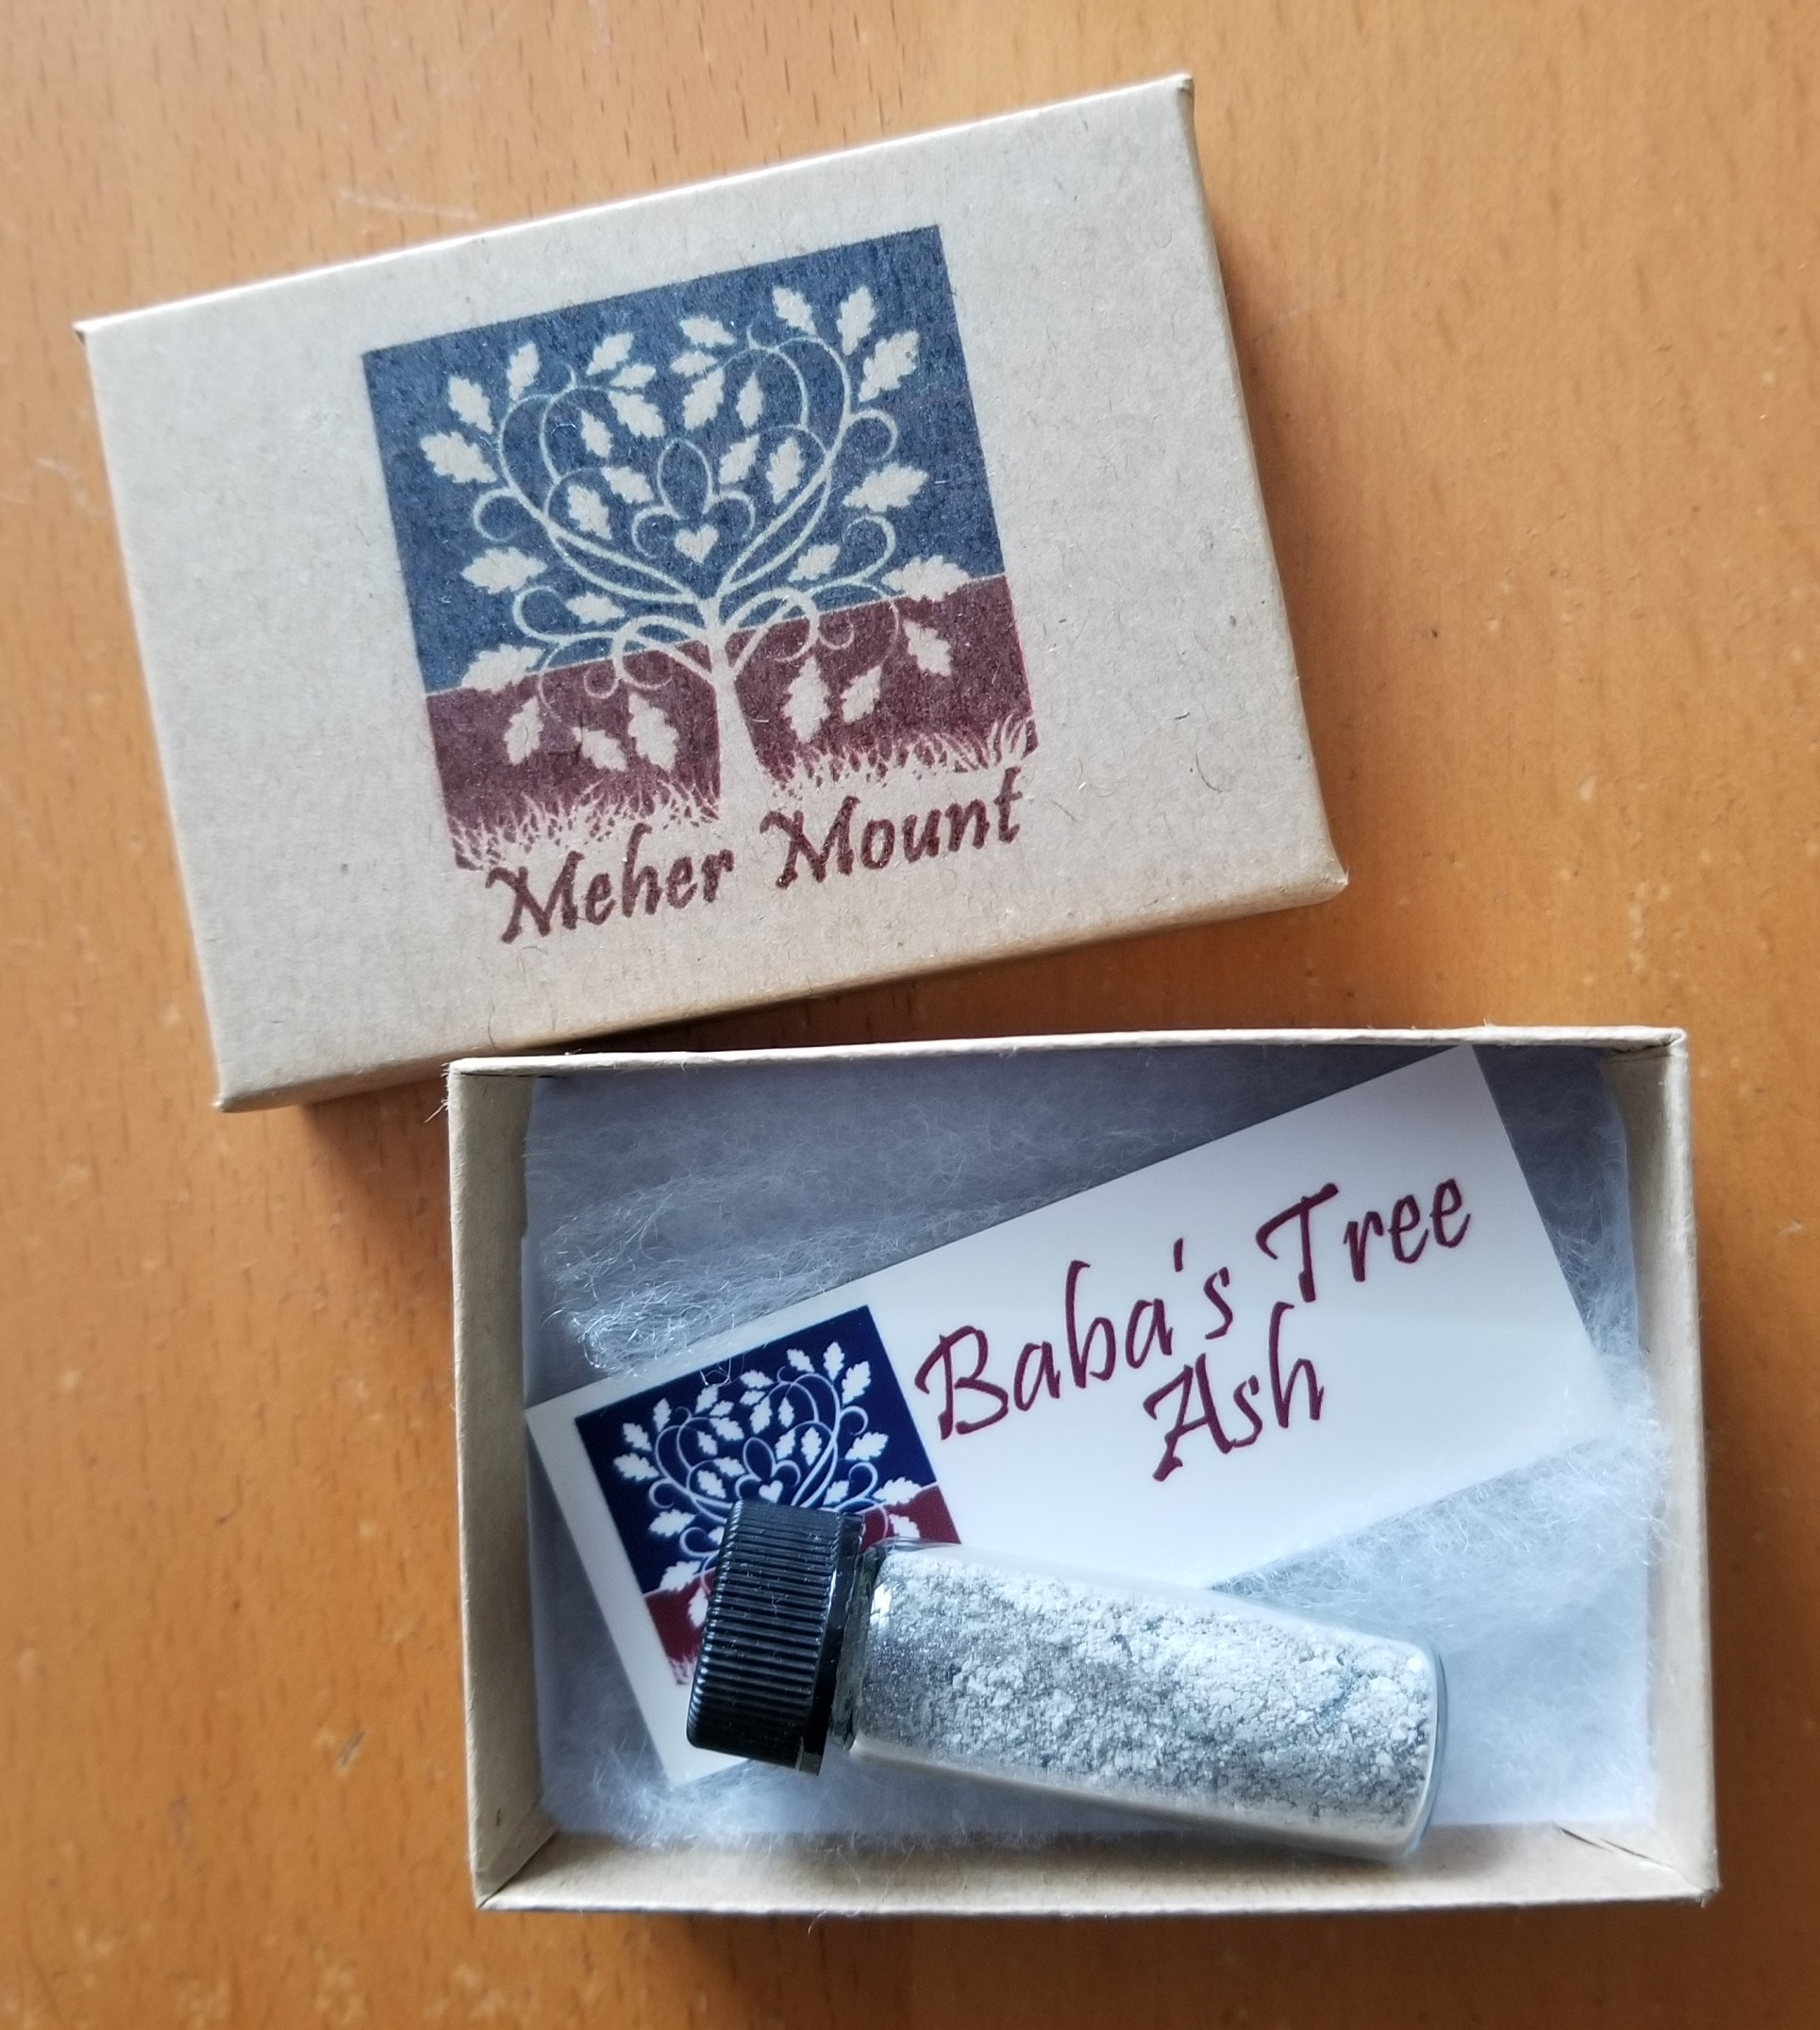 KEEPSAKES VIALS of ash from Baba's Tree are a thank you to all donors and volunteers supporting Meher Mount in the year of the Thomas Fire. (Photo: Margaret Magnus, May 9, 2018)